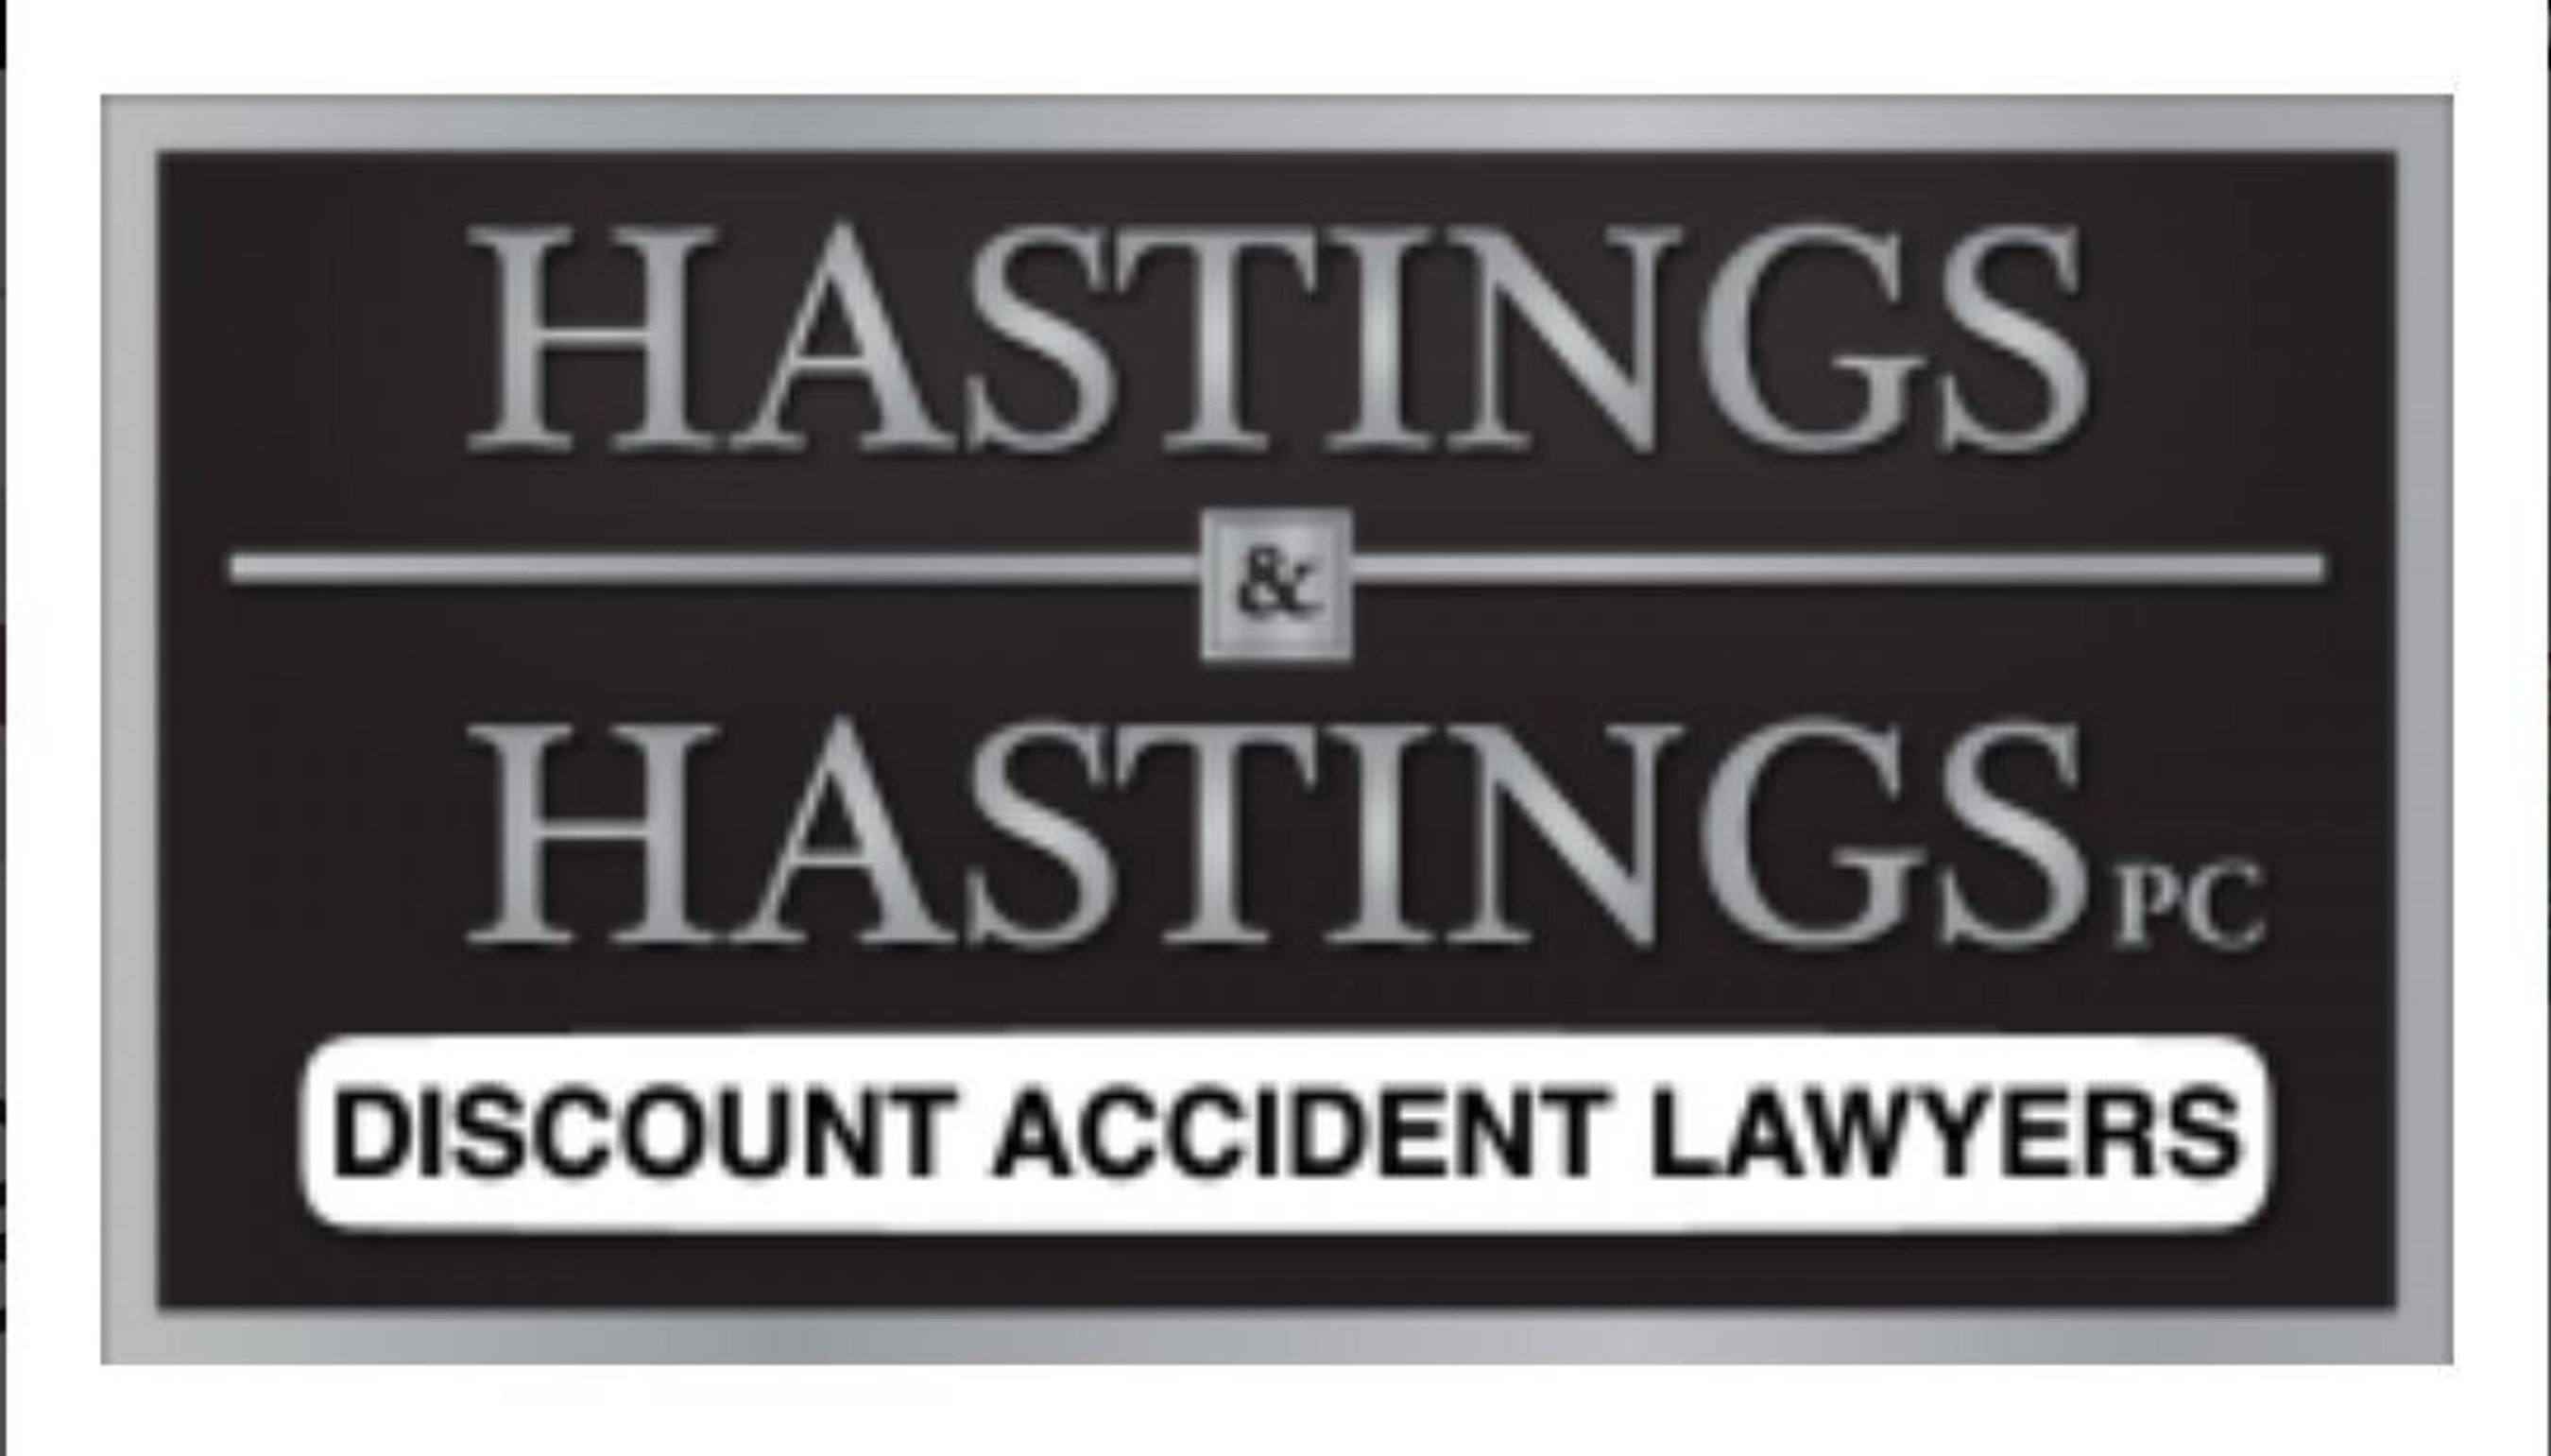 Hastings & Hastings Comments on Holiday Traffic